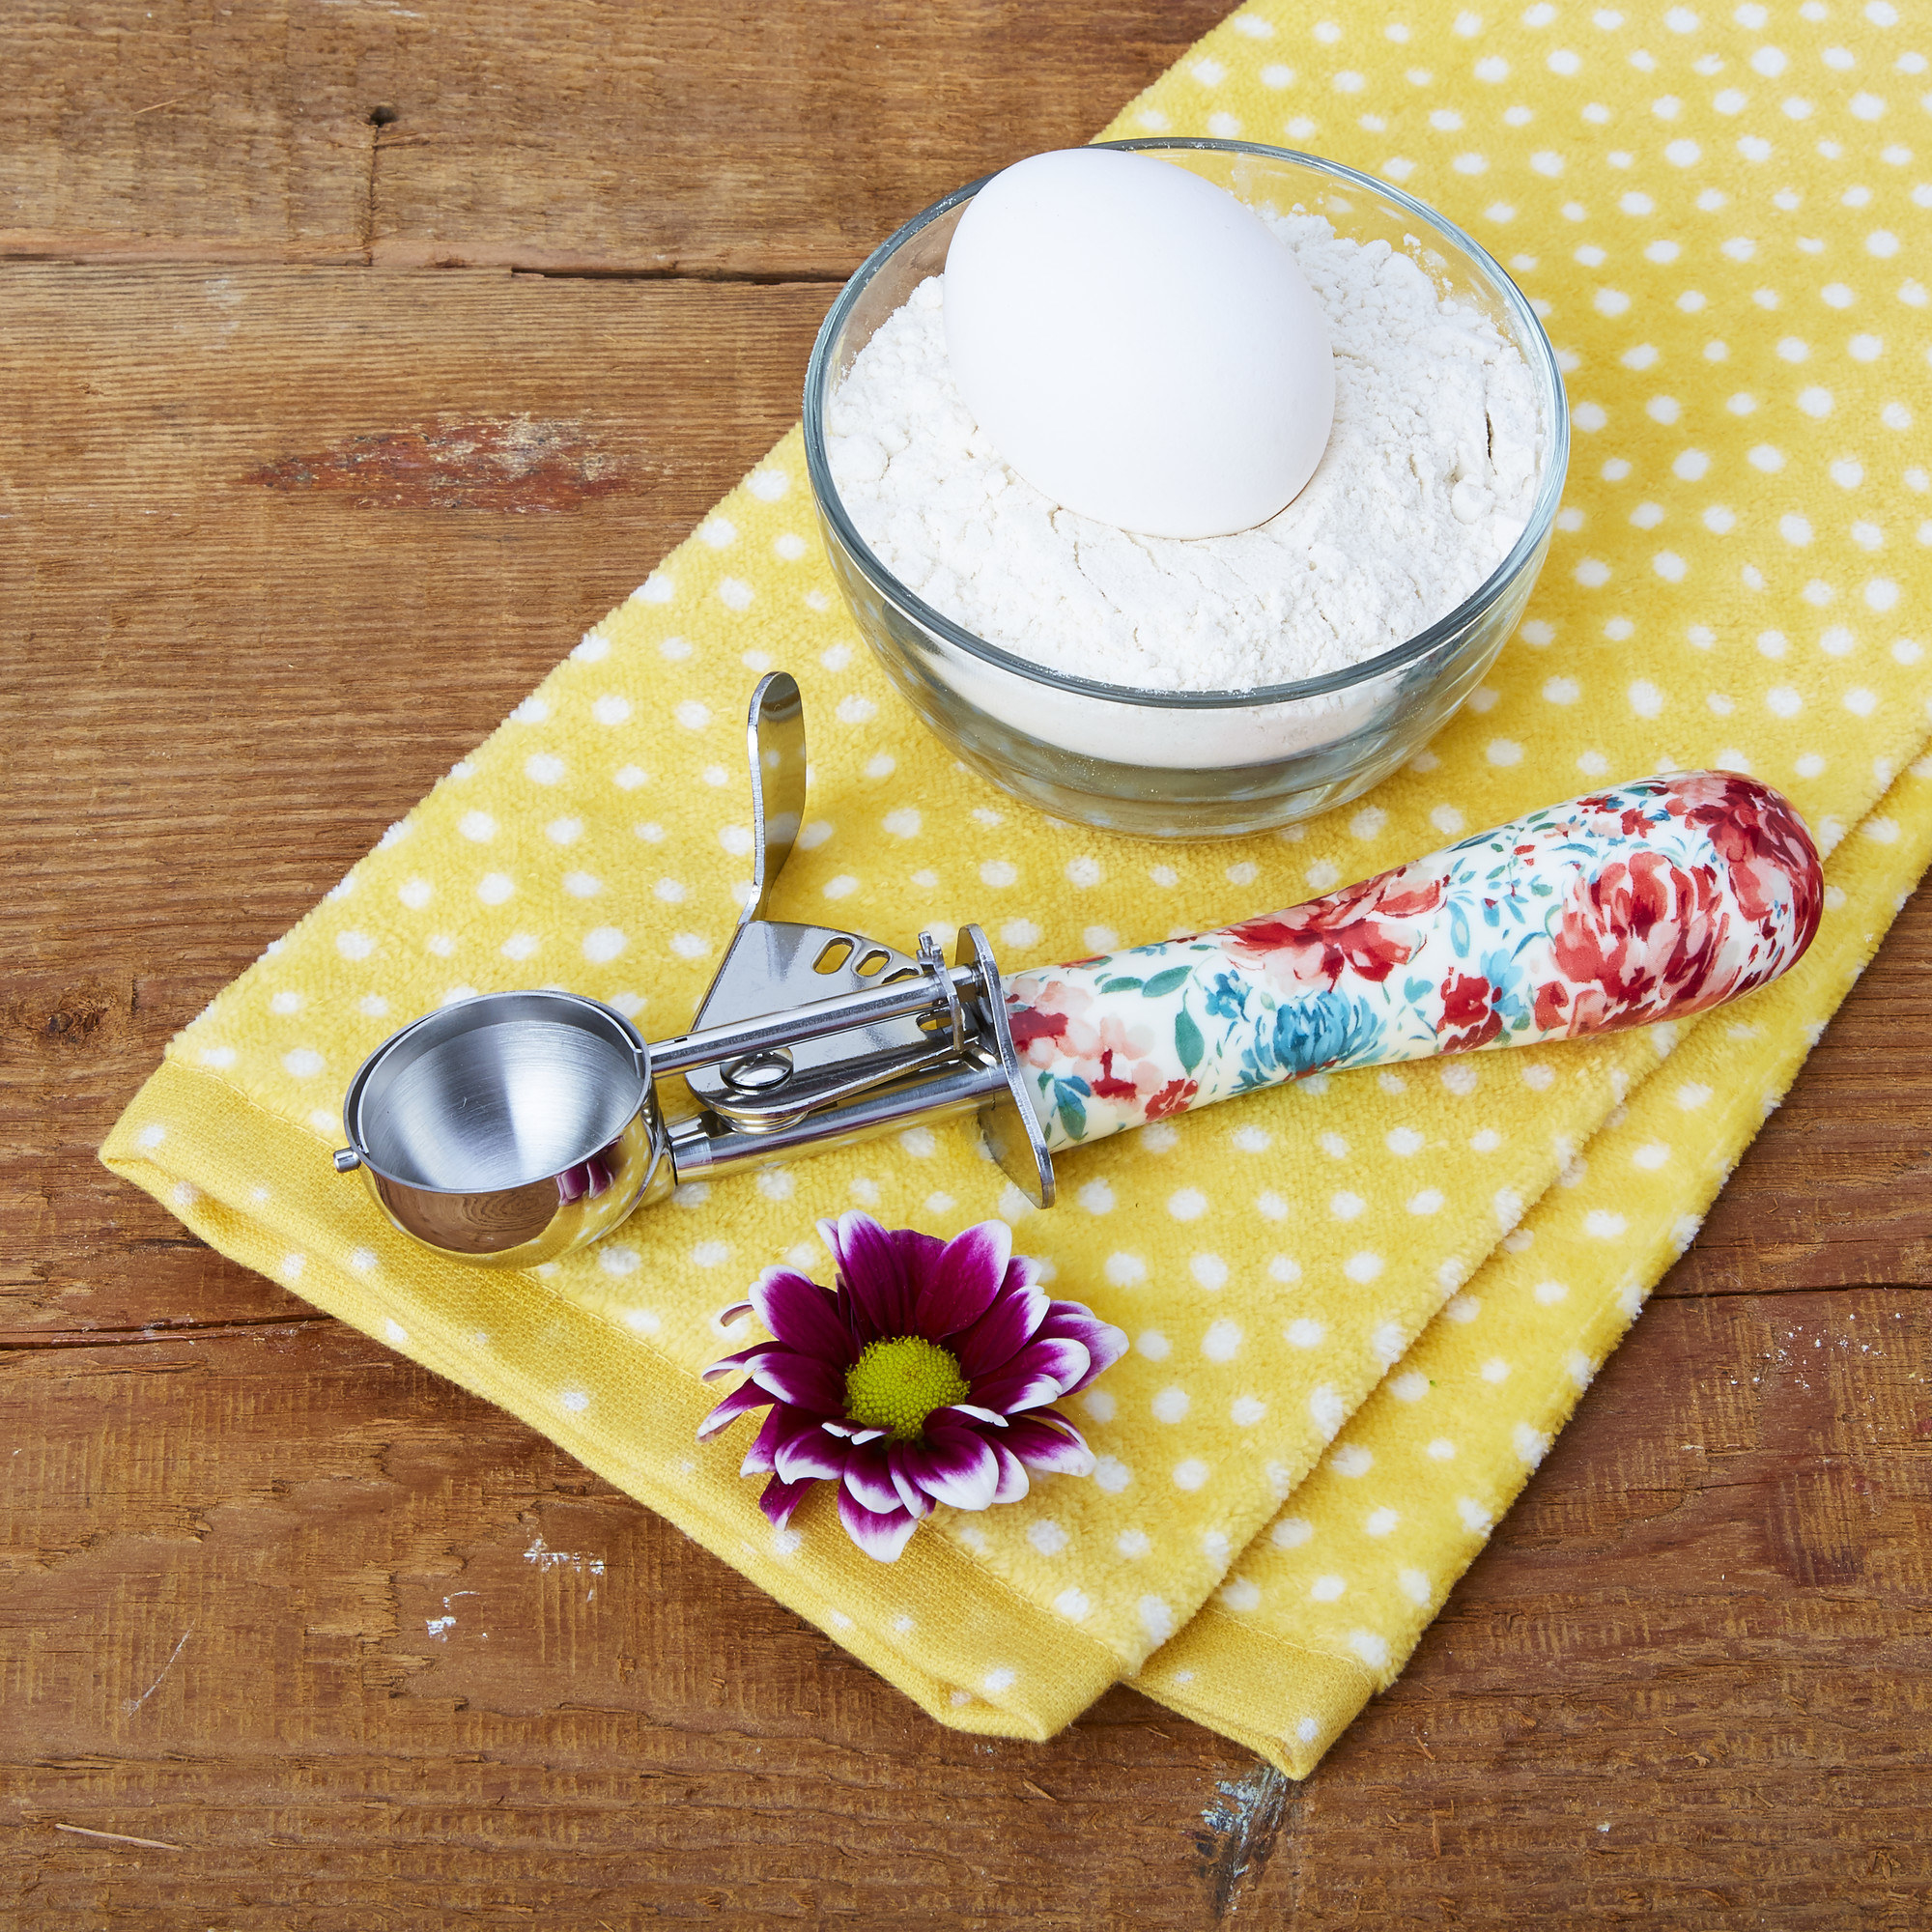 A silver and floral cookie scoop laying on a yellow hand towel